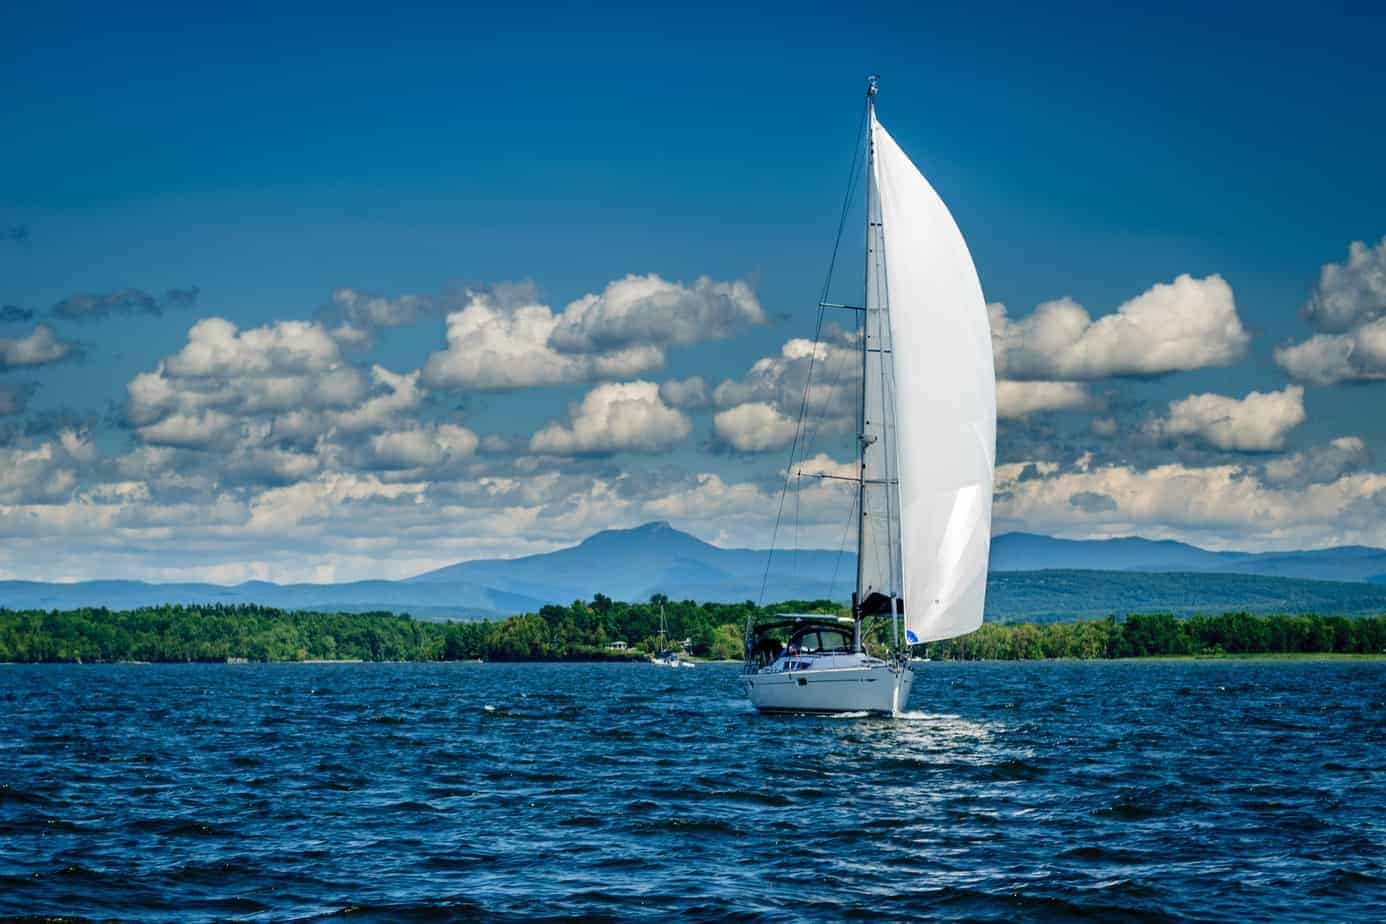 things to do in burlington VT header image - white sailboat on lake champlain vermont, blue sky blue water with mountains in the background